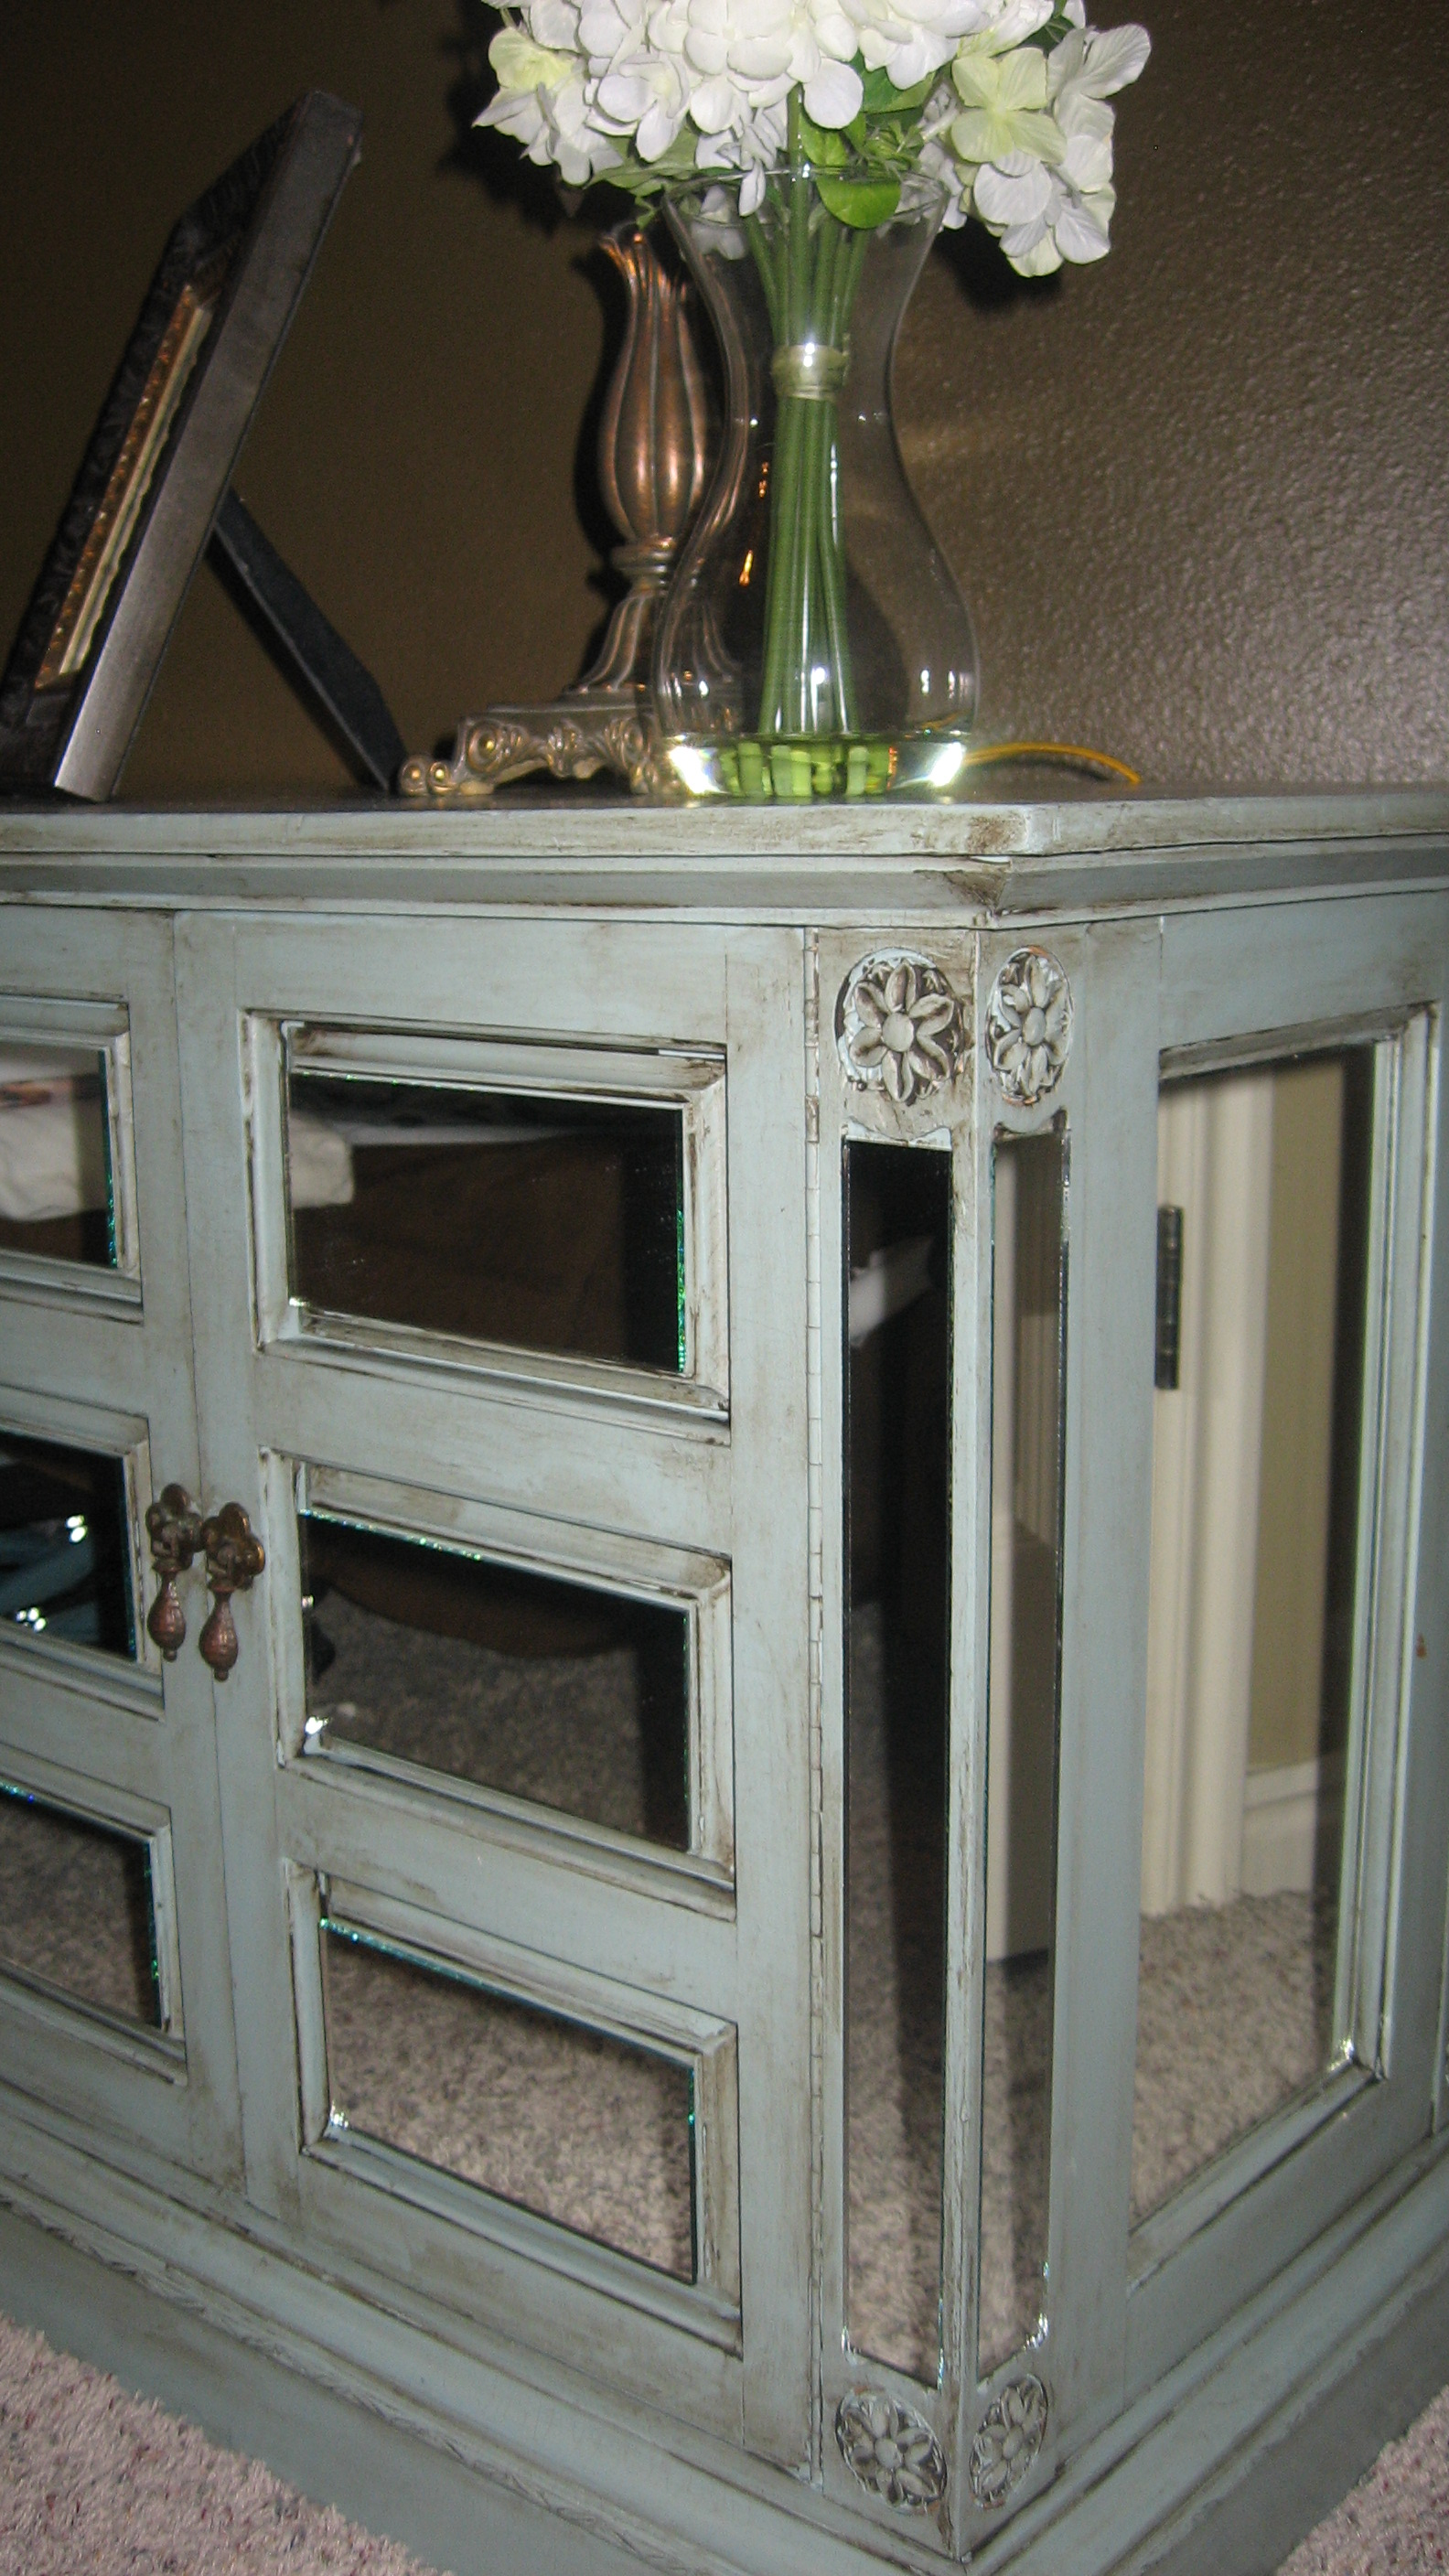 http://designedtothenines.com/wp-content/uploads/2010/08/mirror-nightstand-wedding-024.jpg